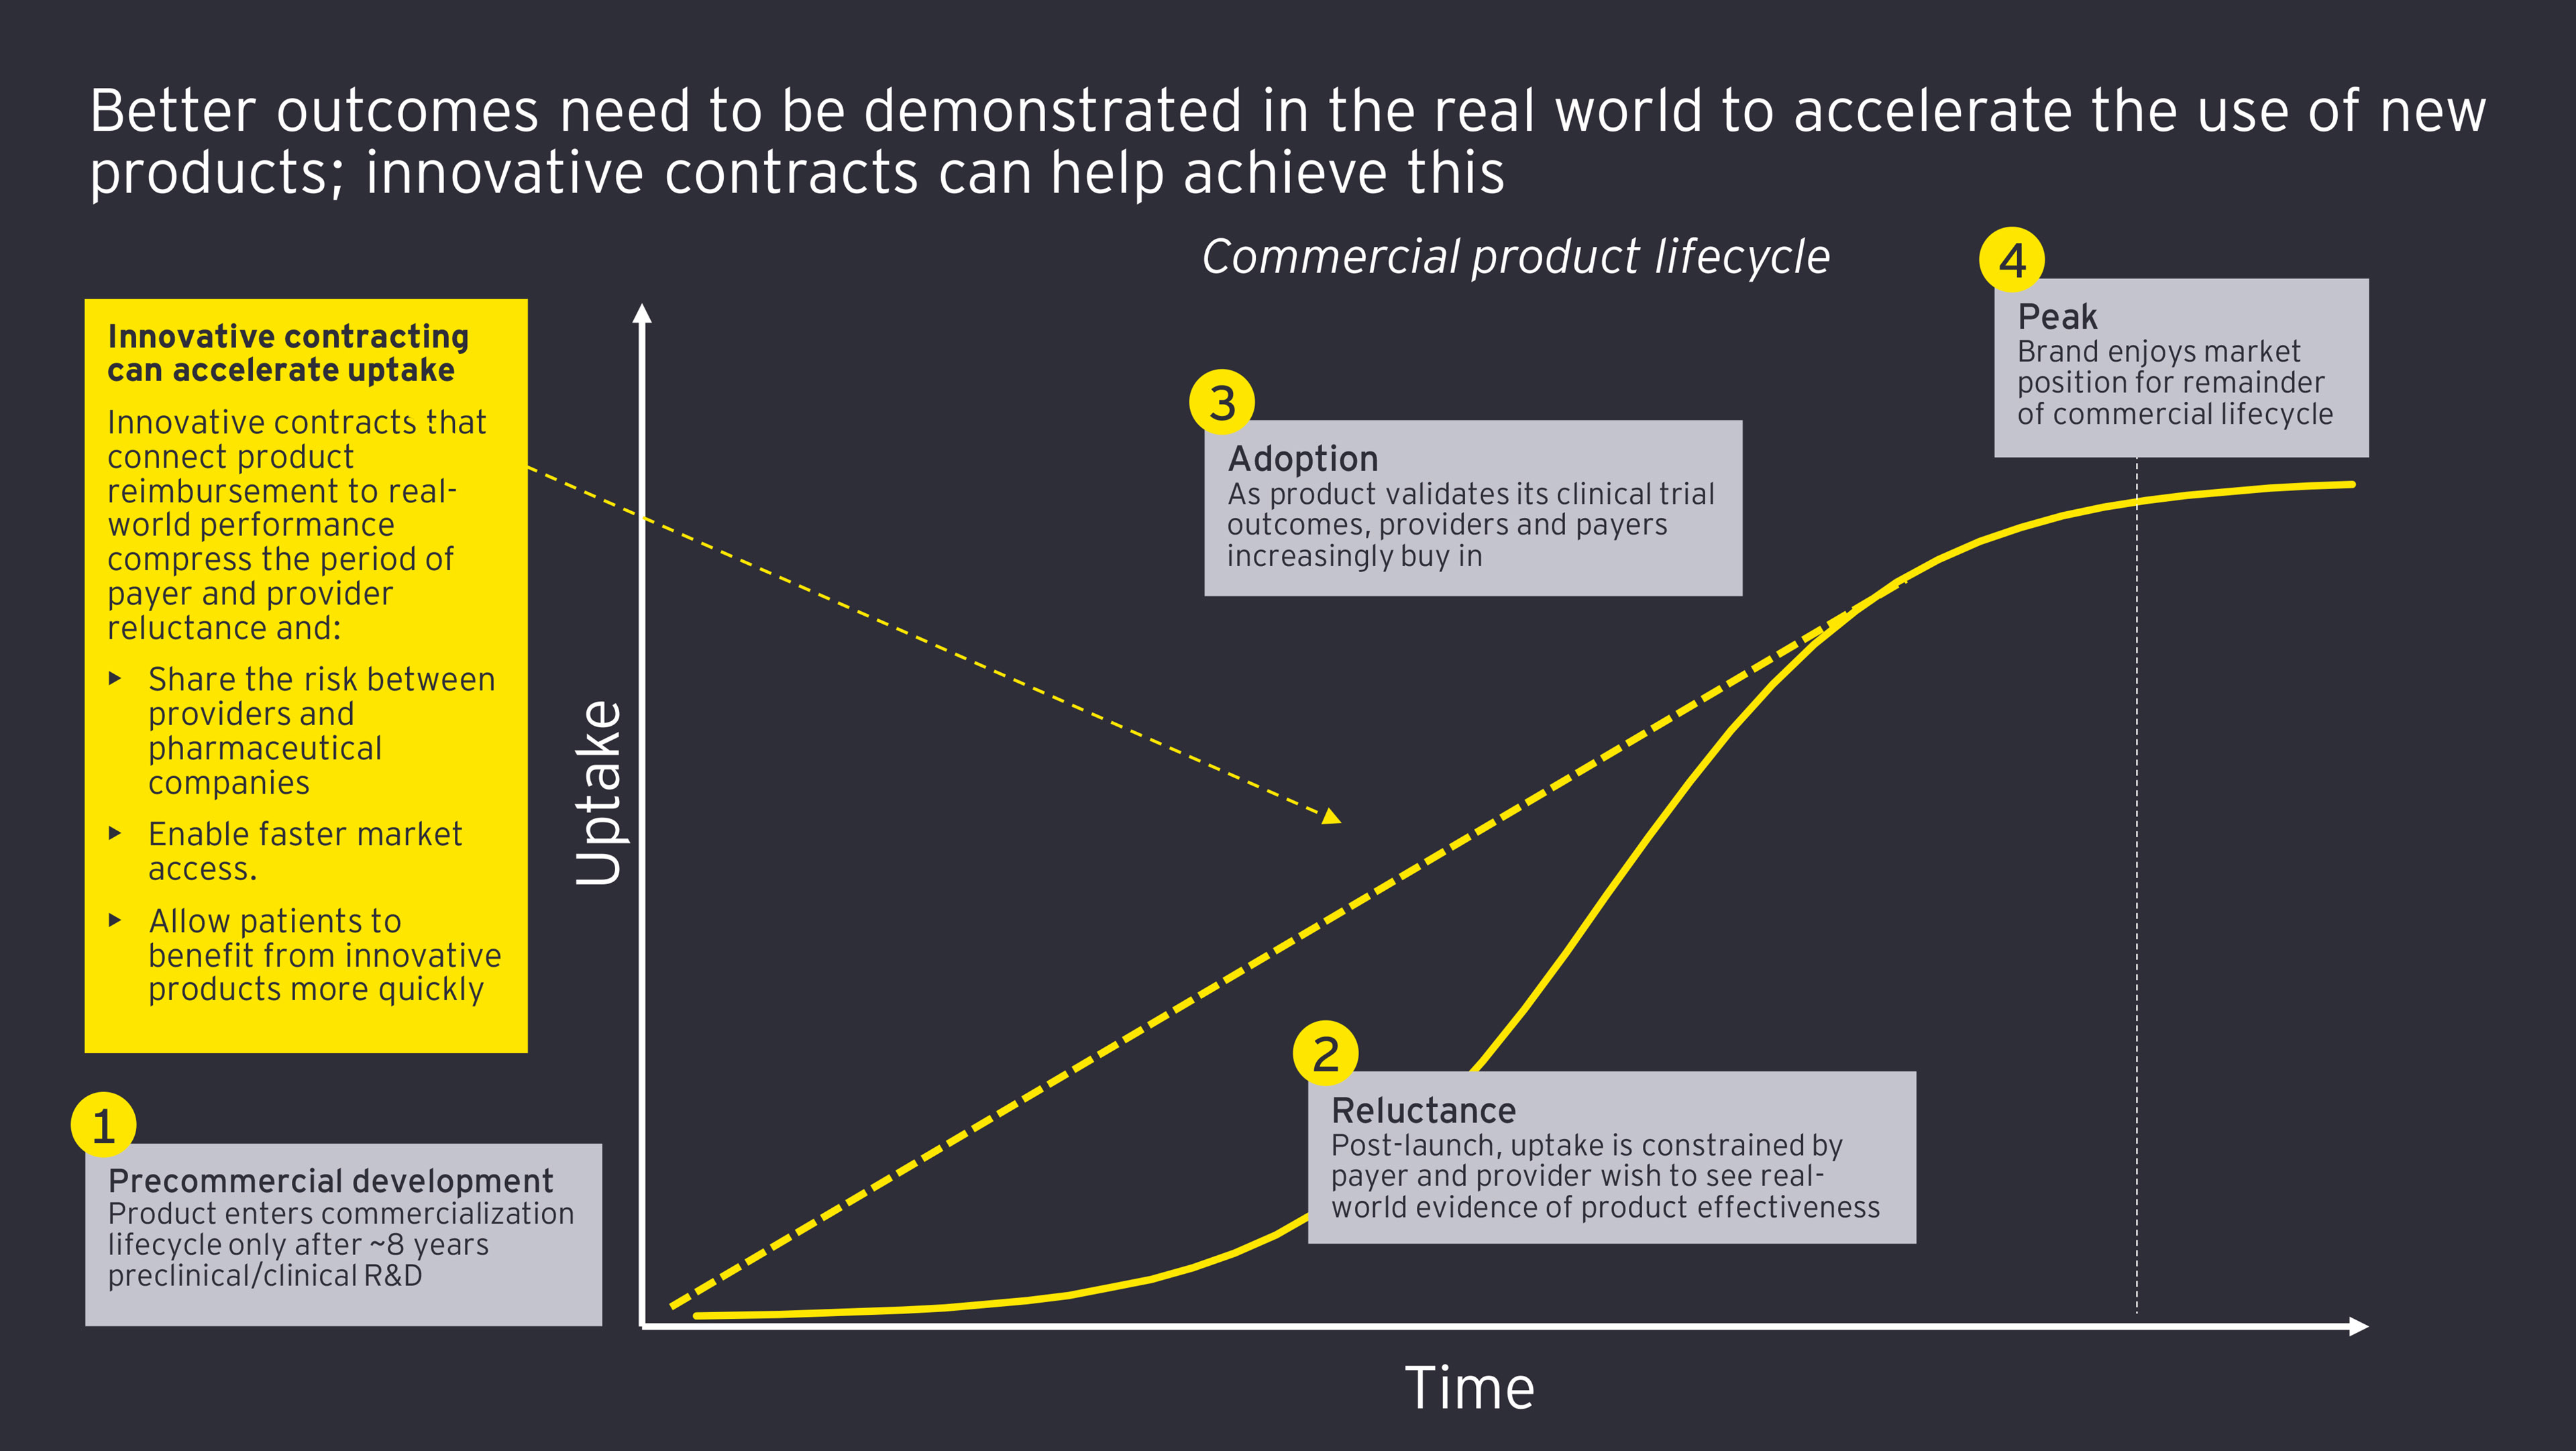 Commercial product lifecycle